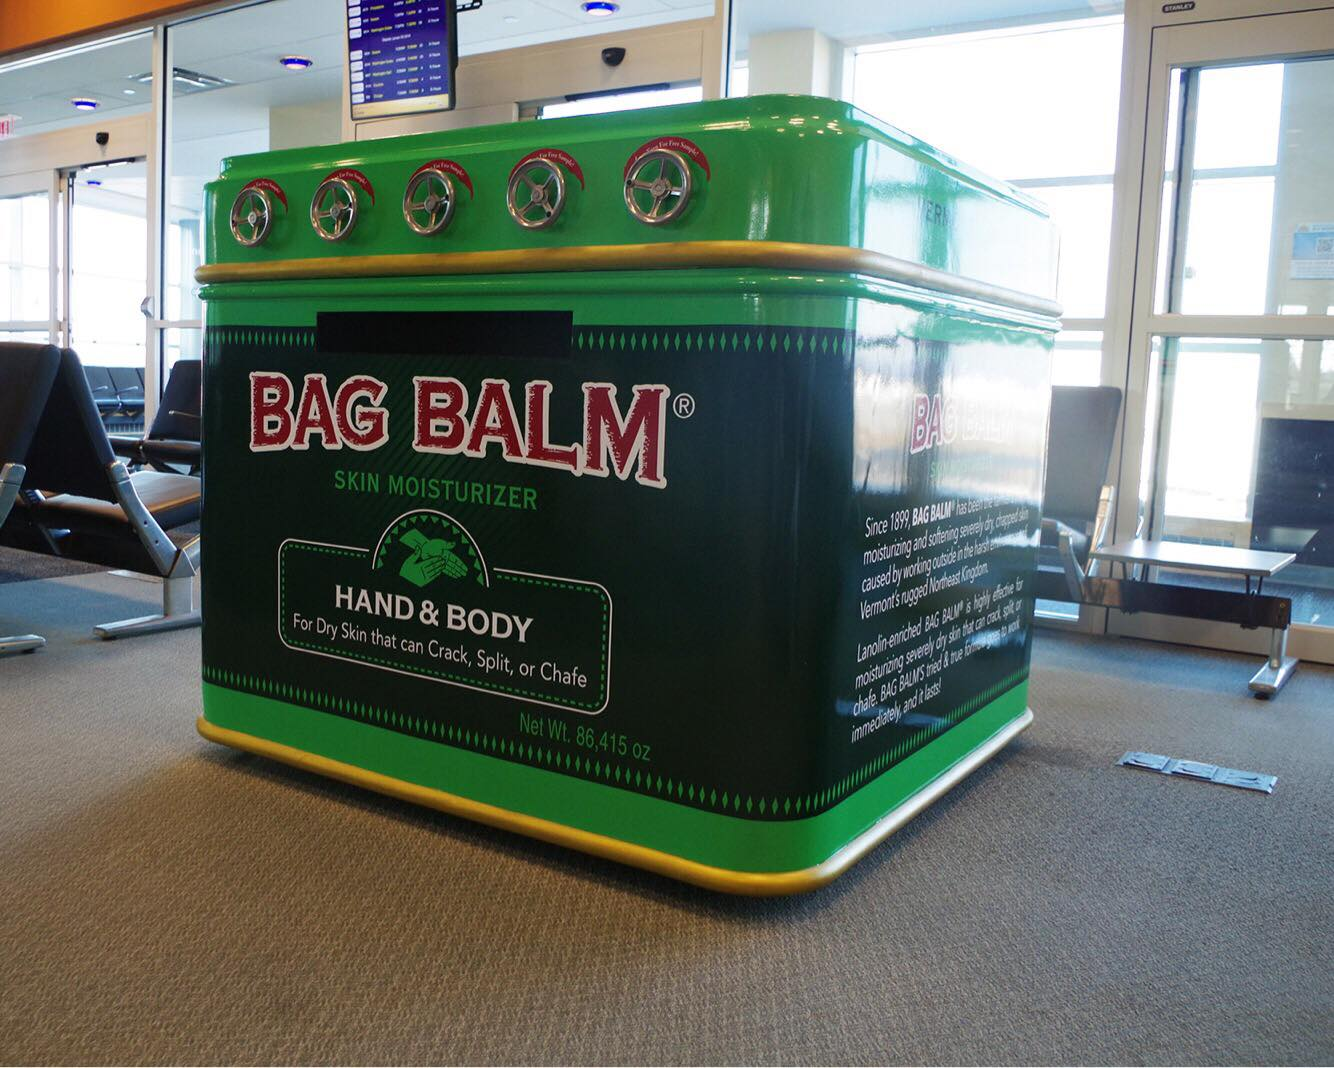 Bag Balm Vending Machine